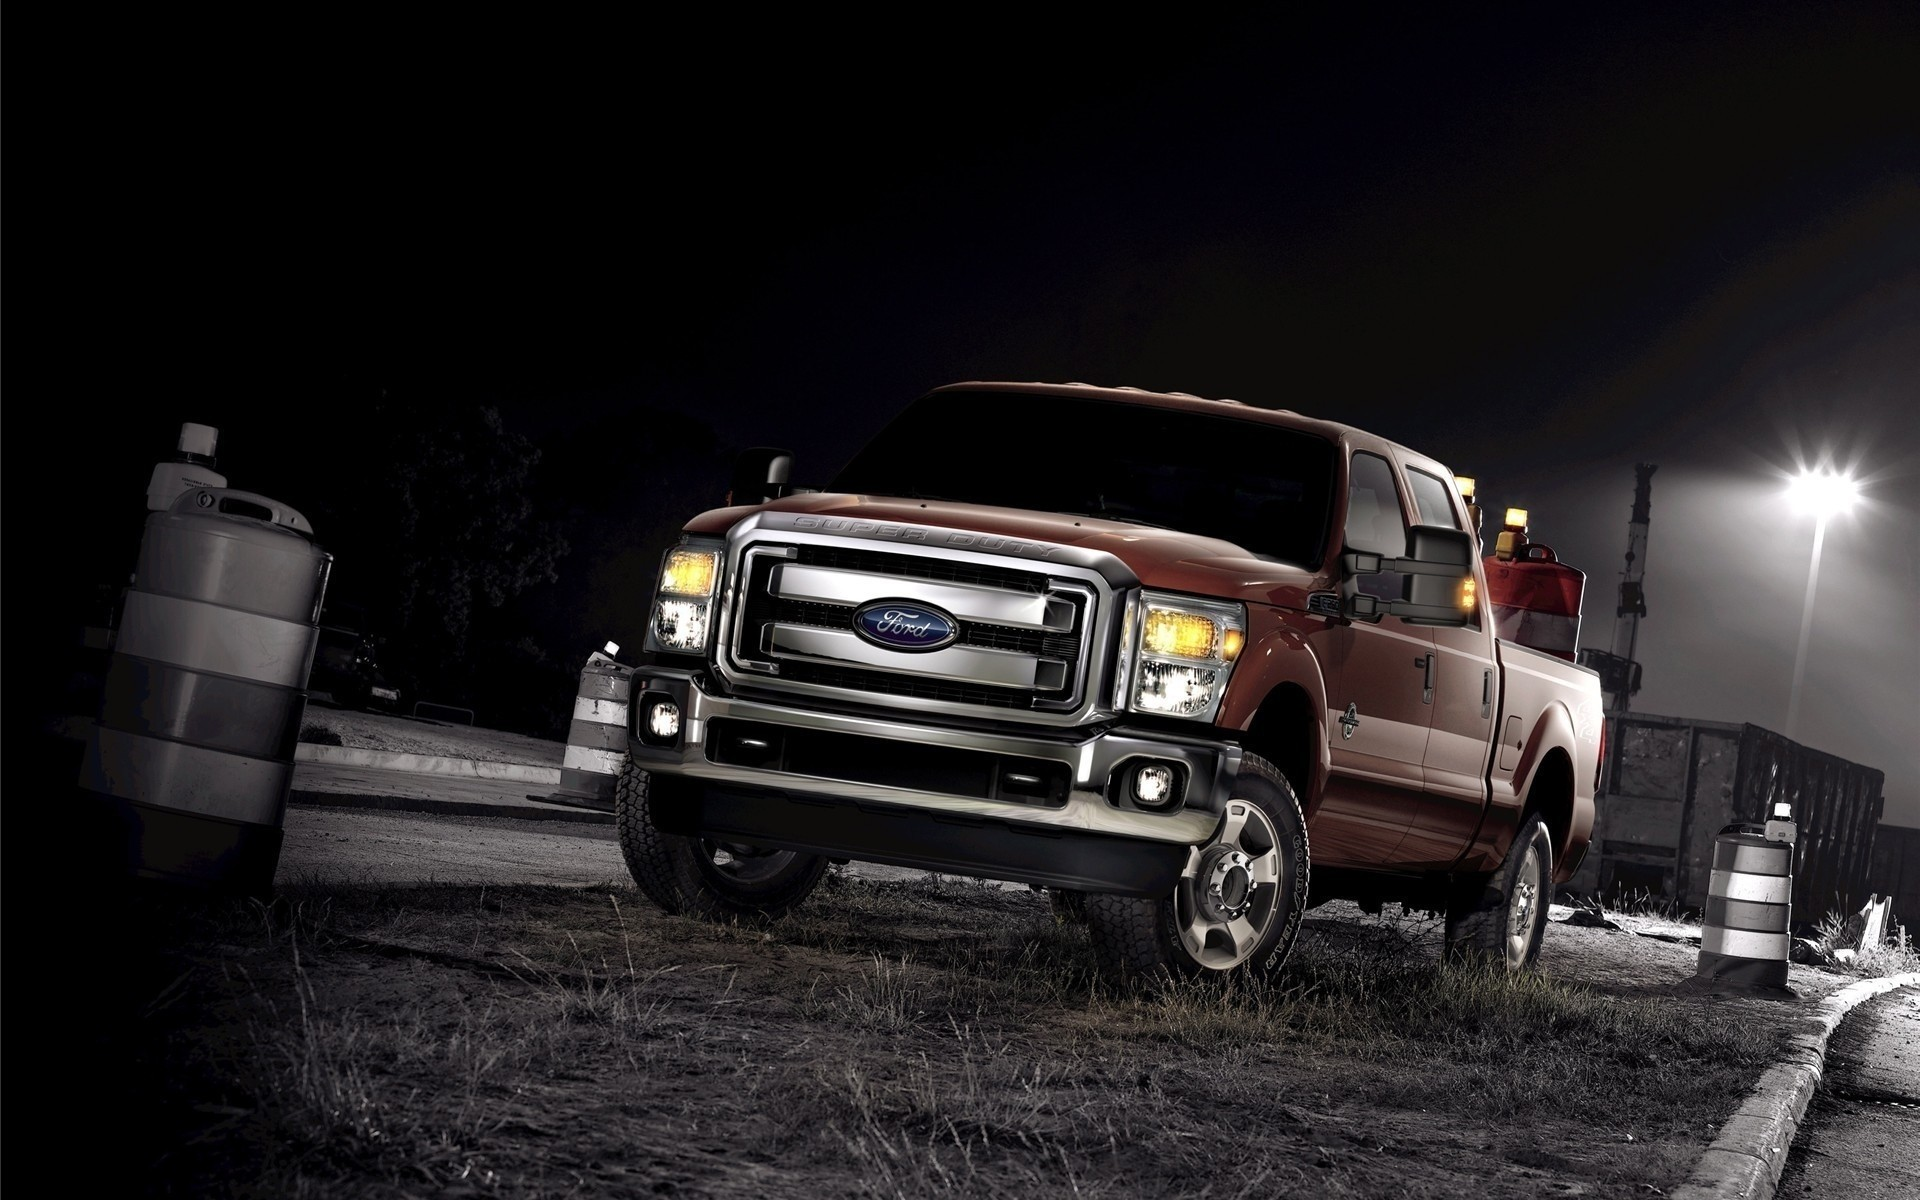 Ford Powerstroke Wallpaper 45 images 1920x1200